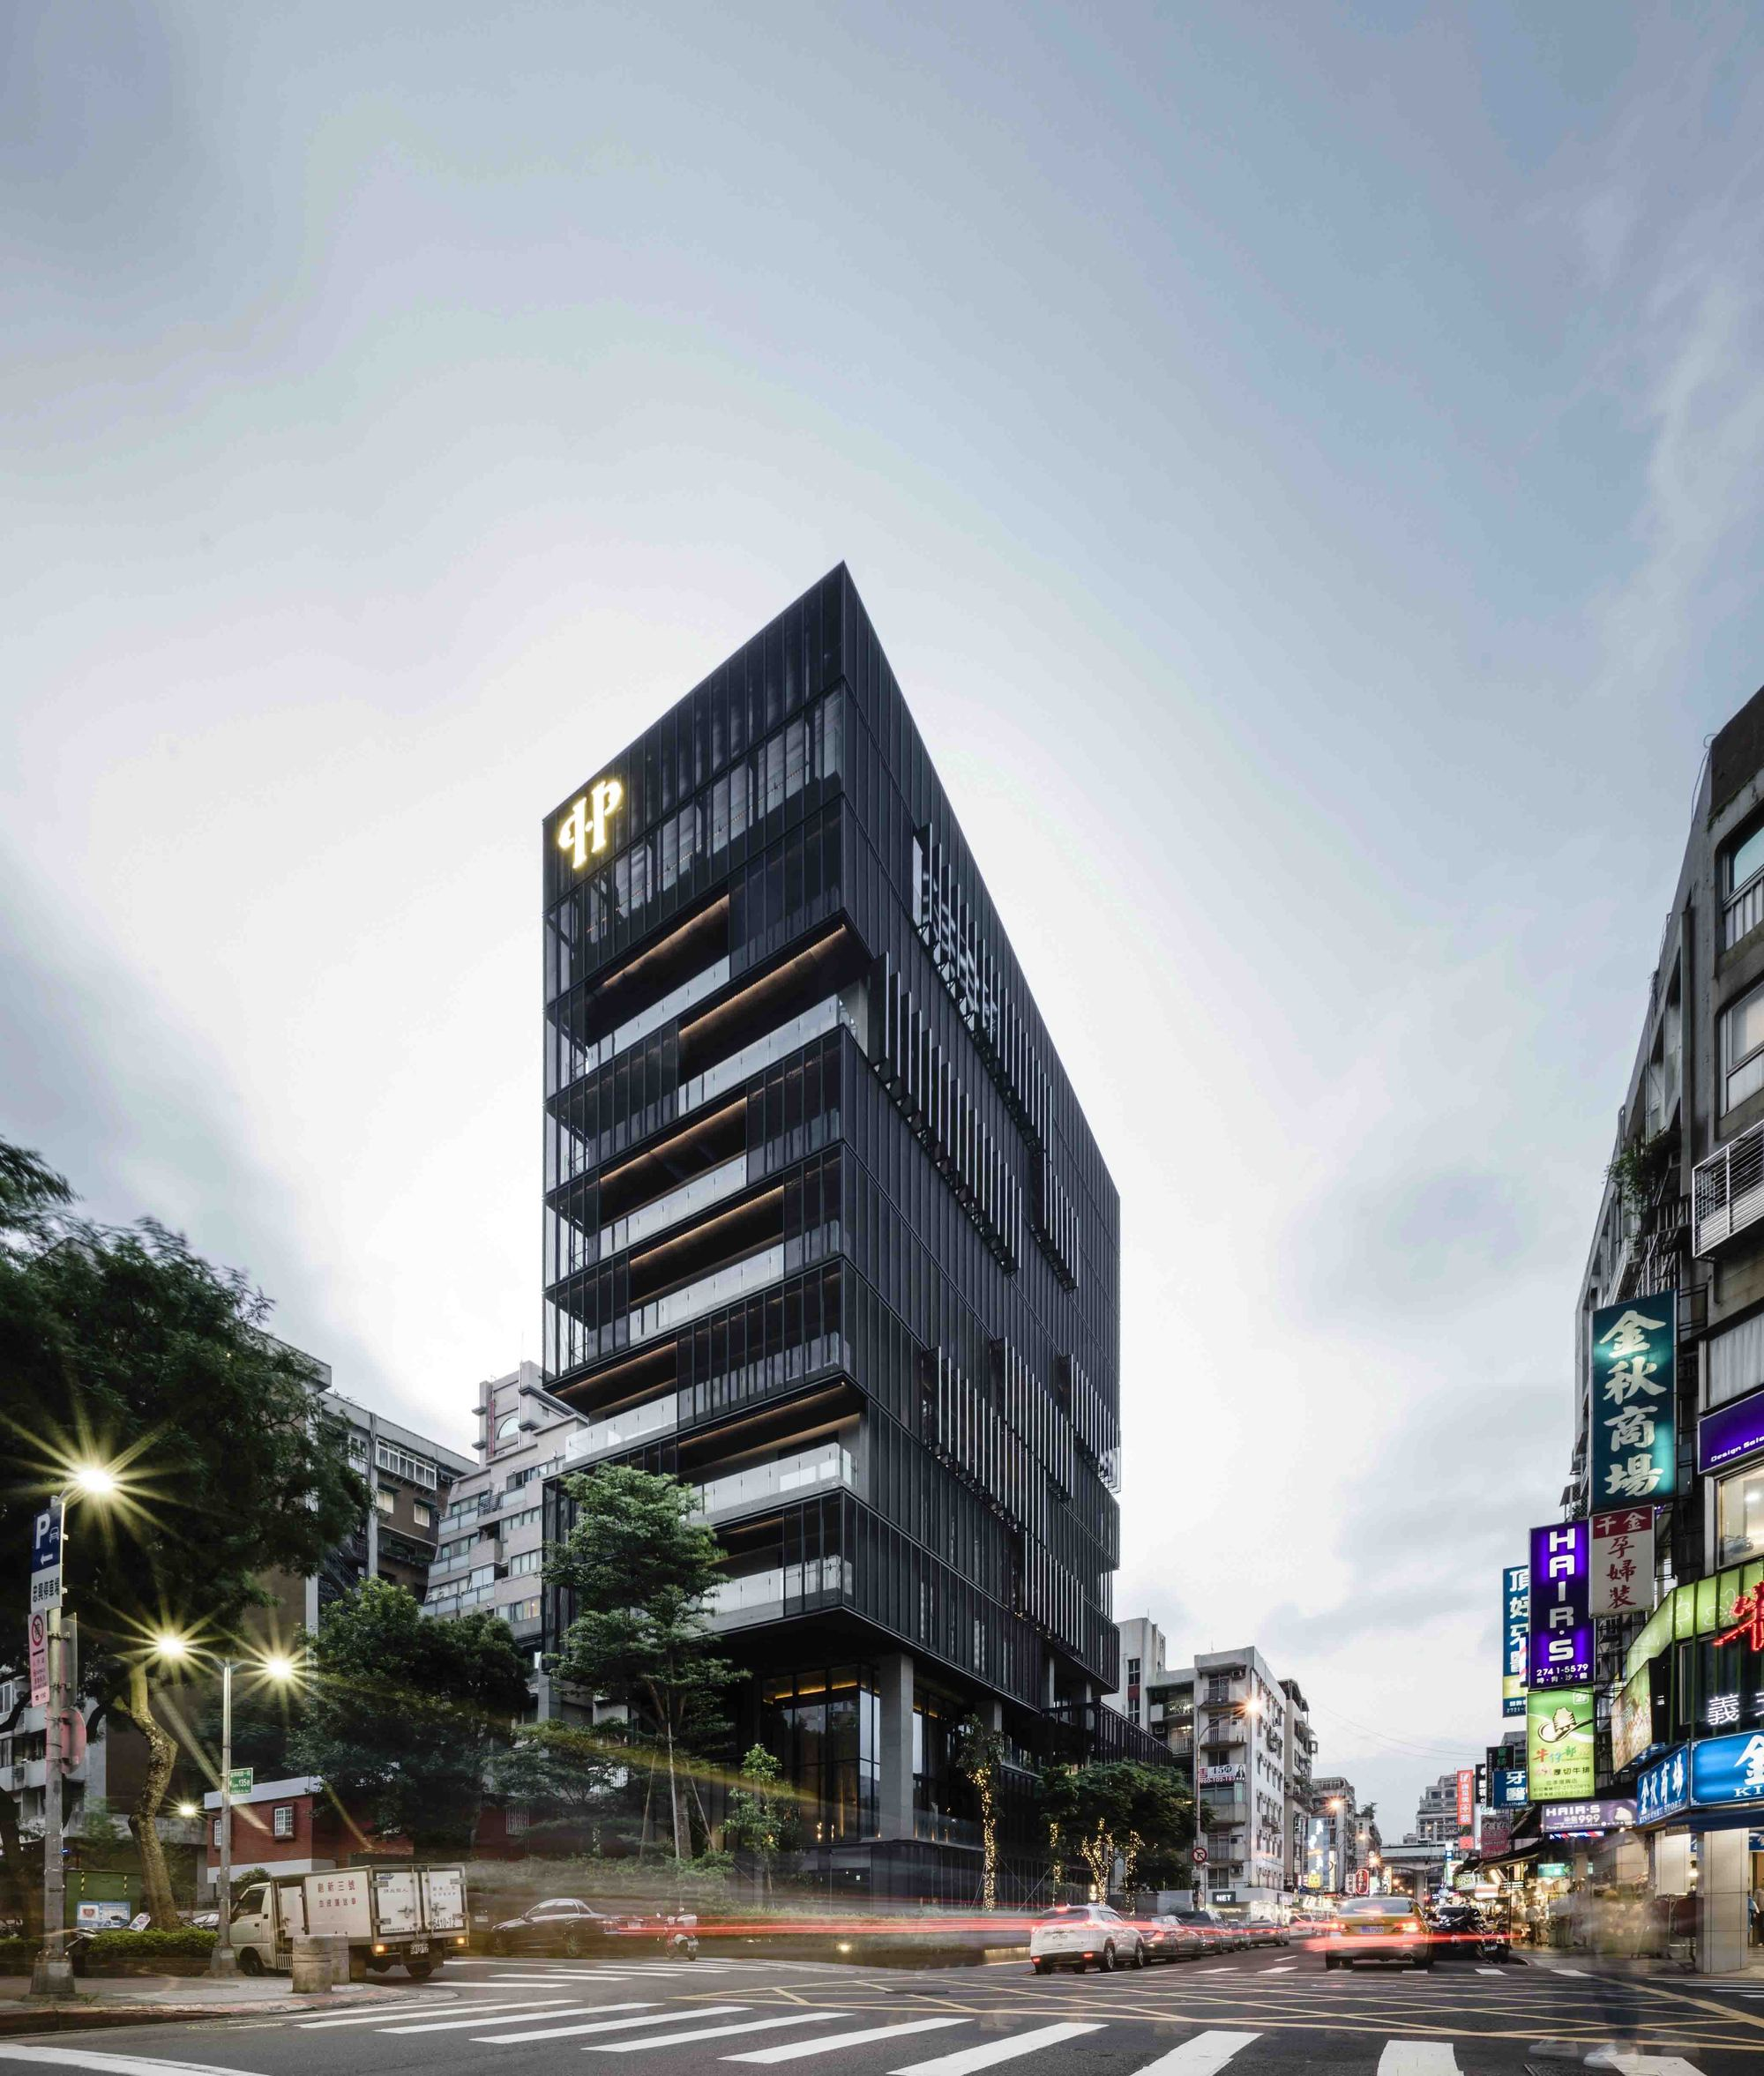 Hotel proverbs taipei ray chen partners architects for Daily hotel